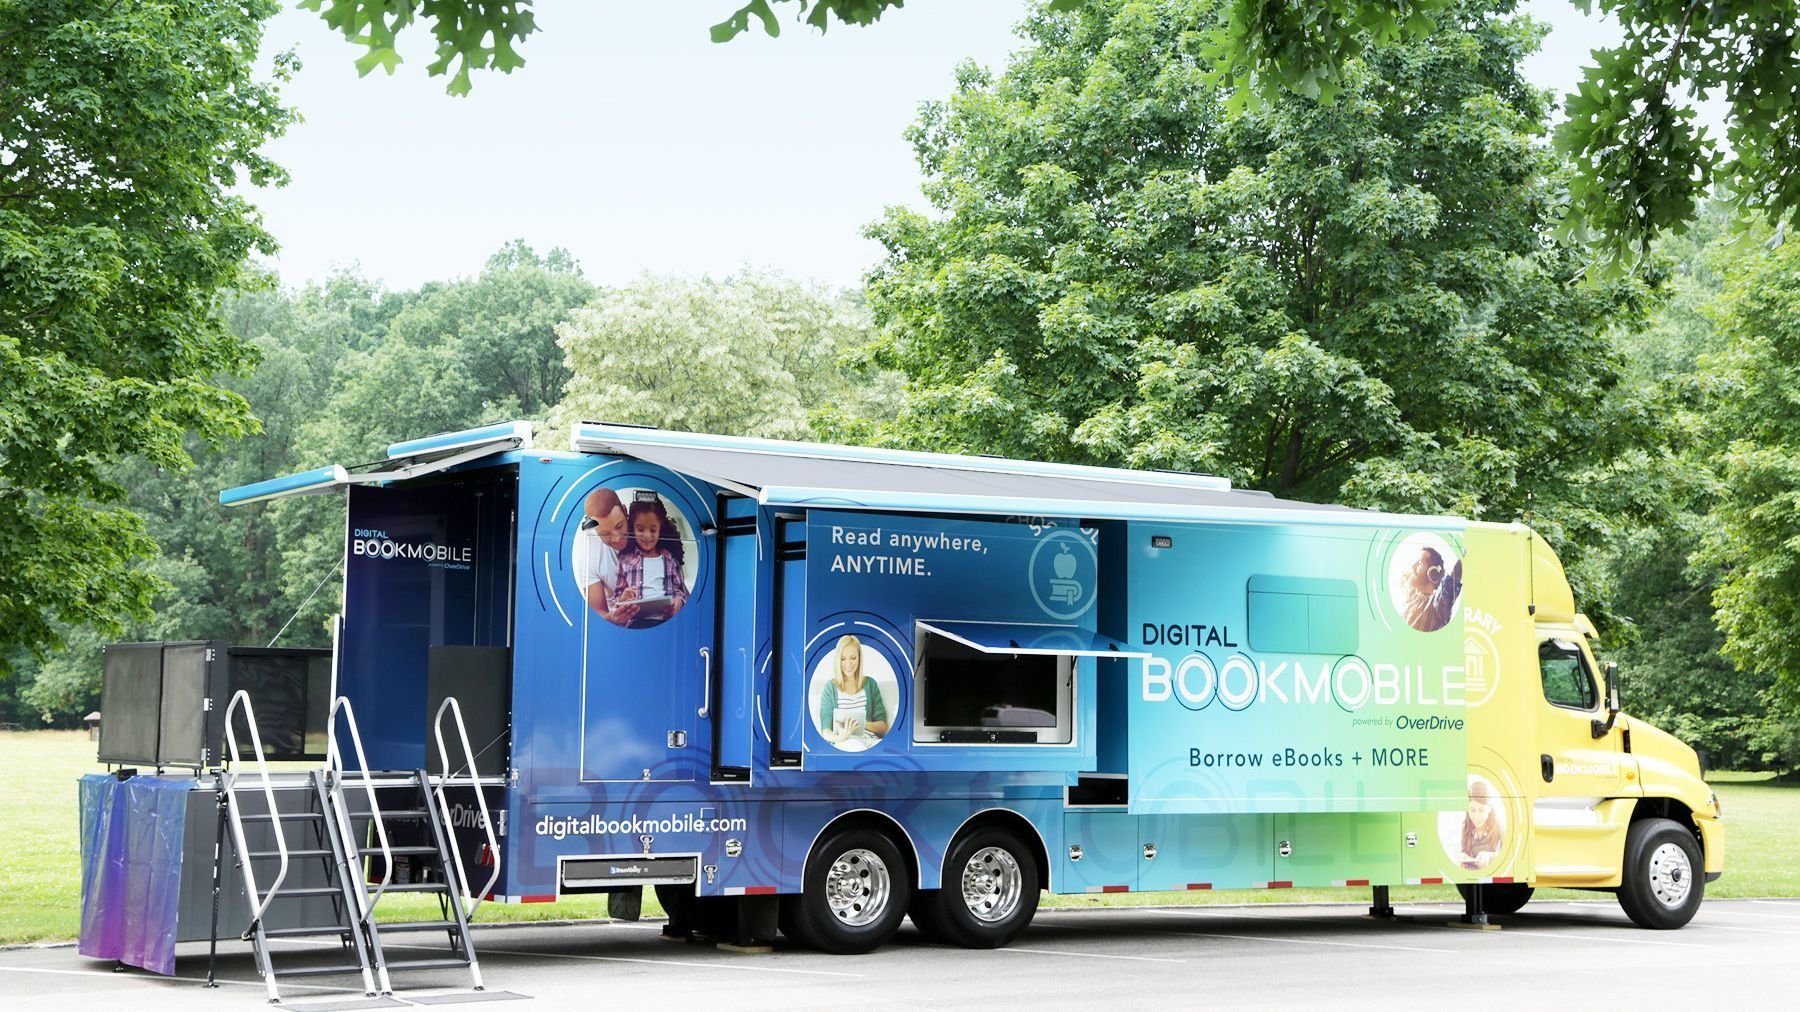 Poway Library will host digital bookmobile Friday